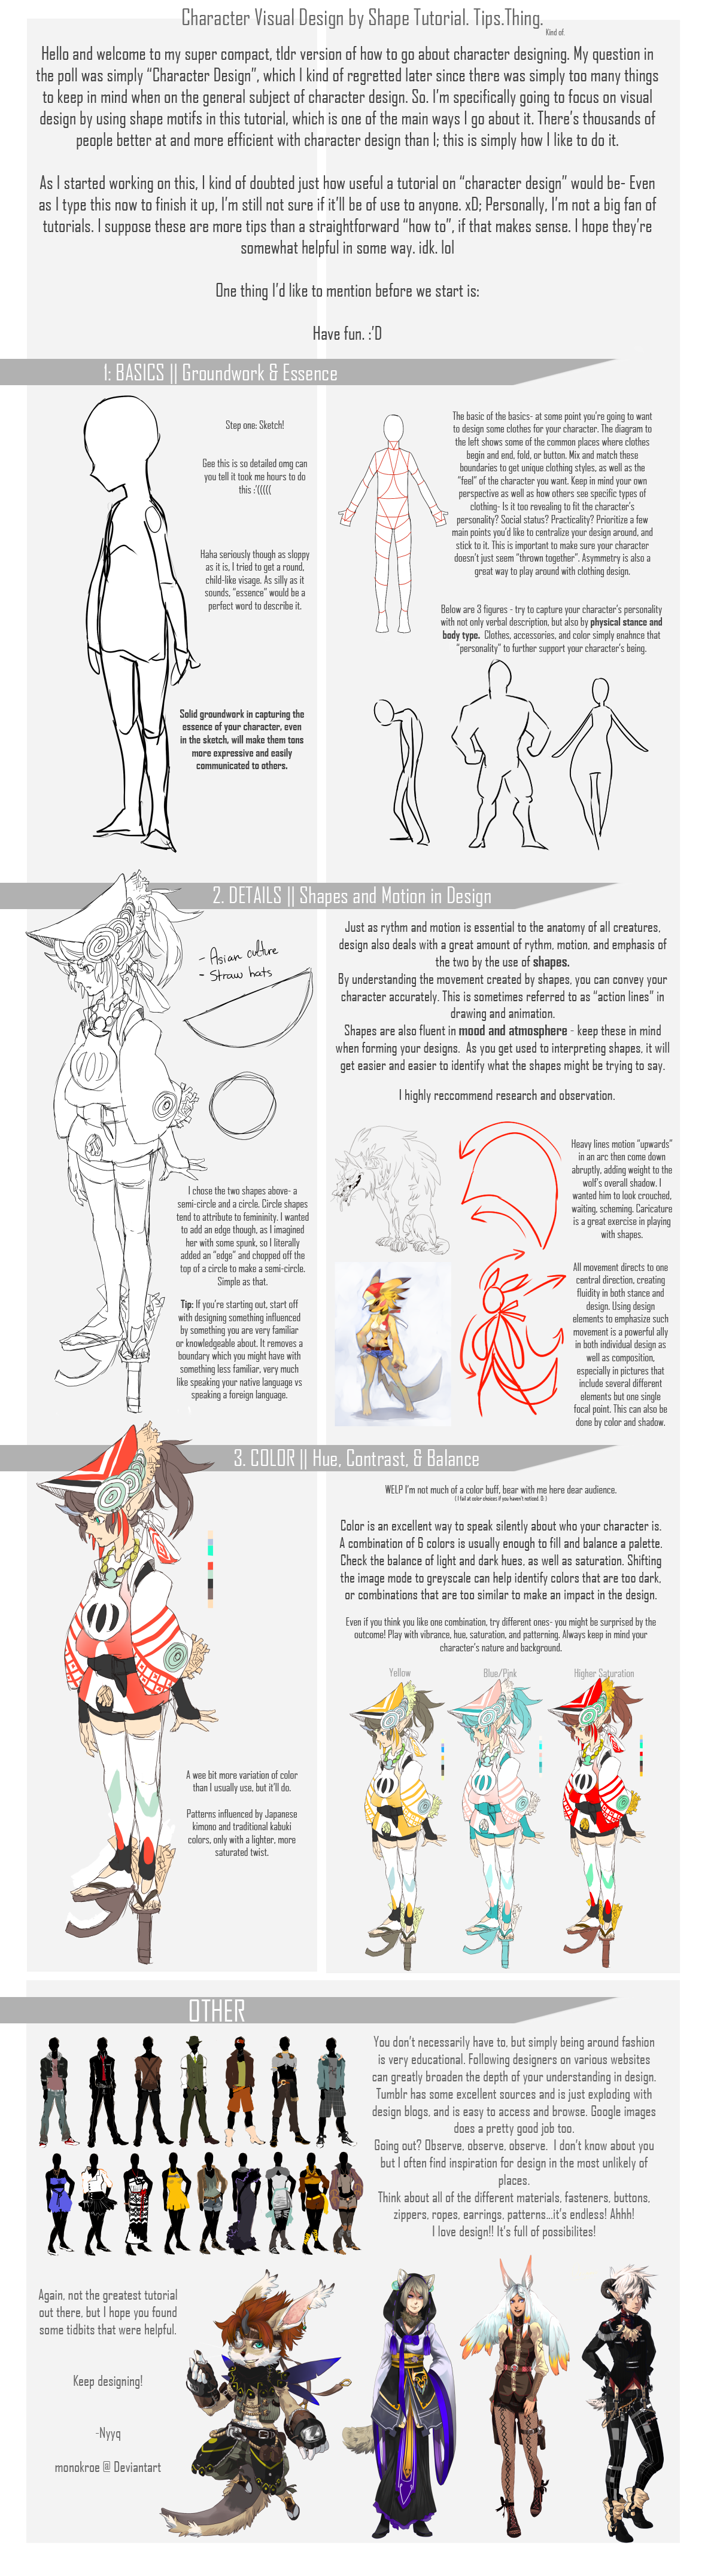 Character Design Basic Shapes : Basic character design by shape monokroe on deviantart